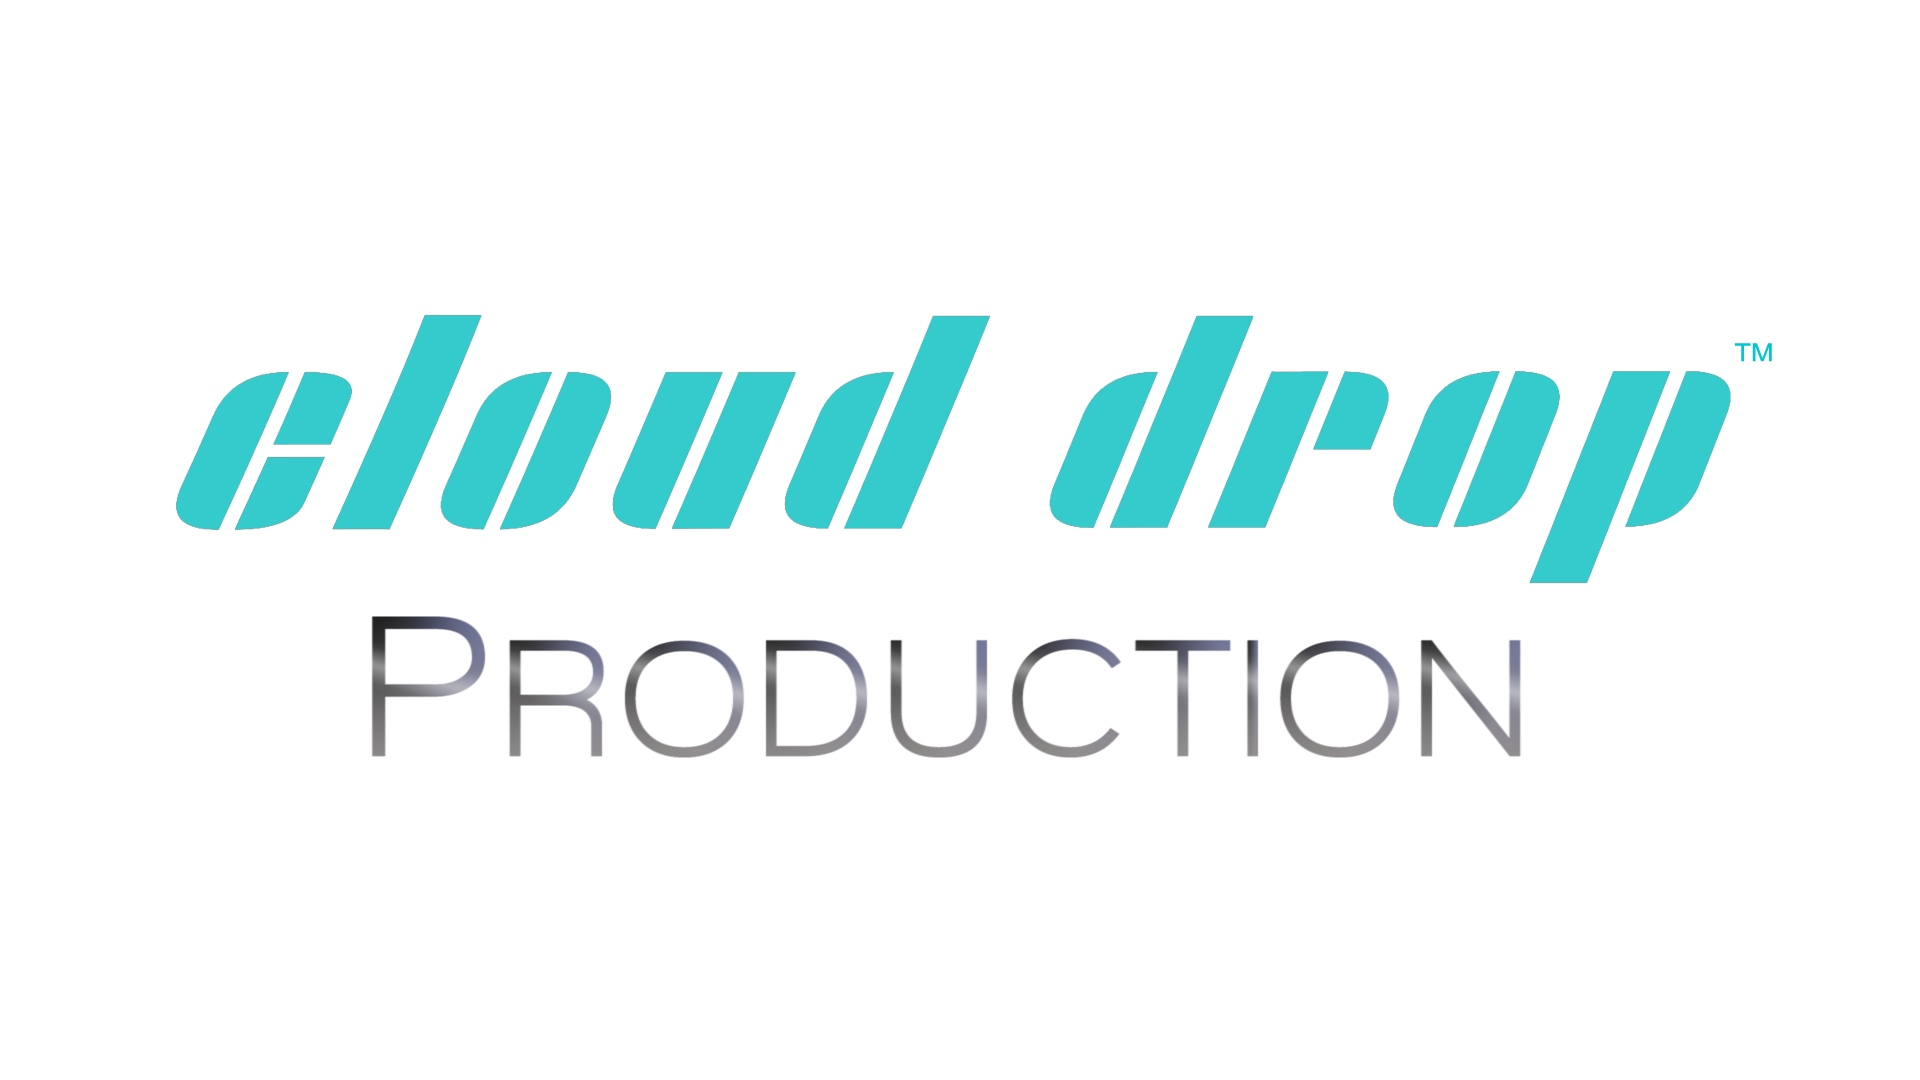 Clouddrop_production_01tran